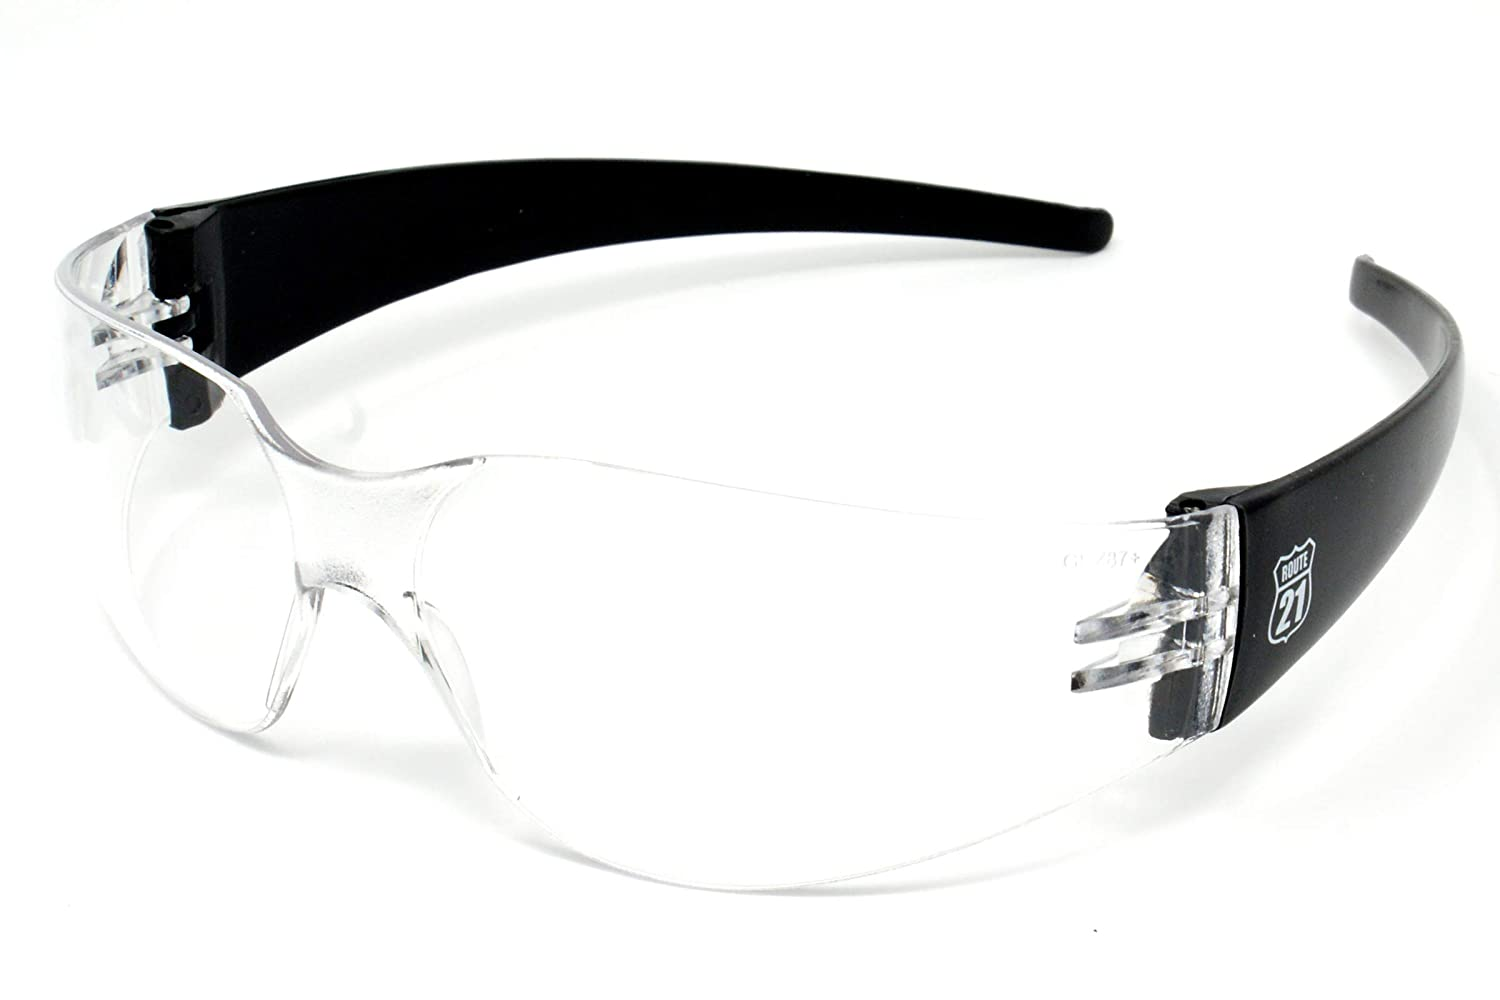 Antifog shatterproof Clear wraparound UV400 Sports glasses/sunglasses and Free microfibre storage pouch